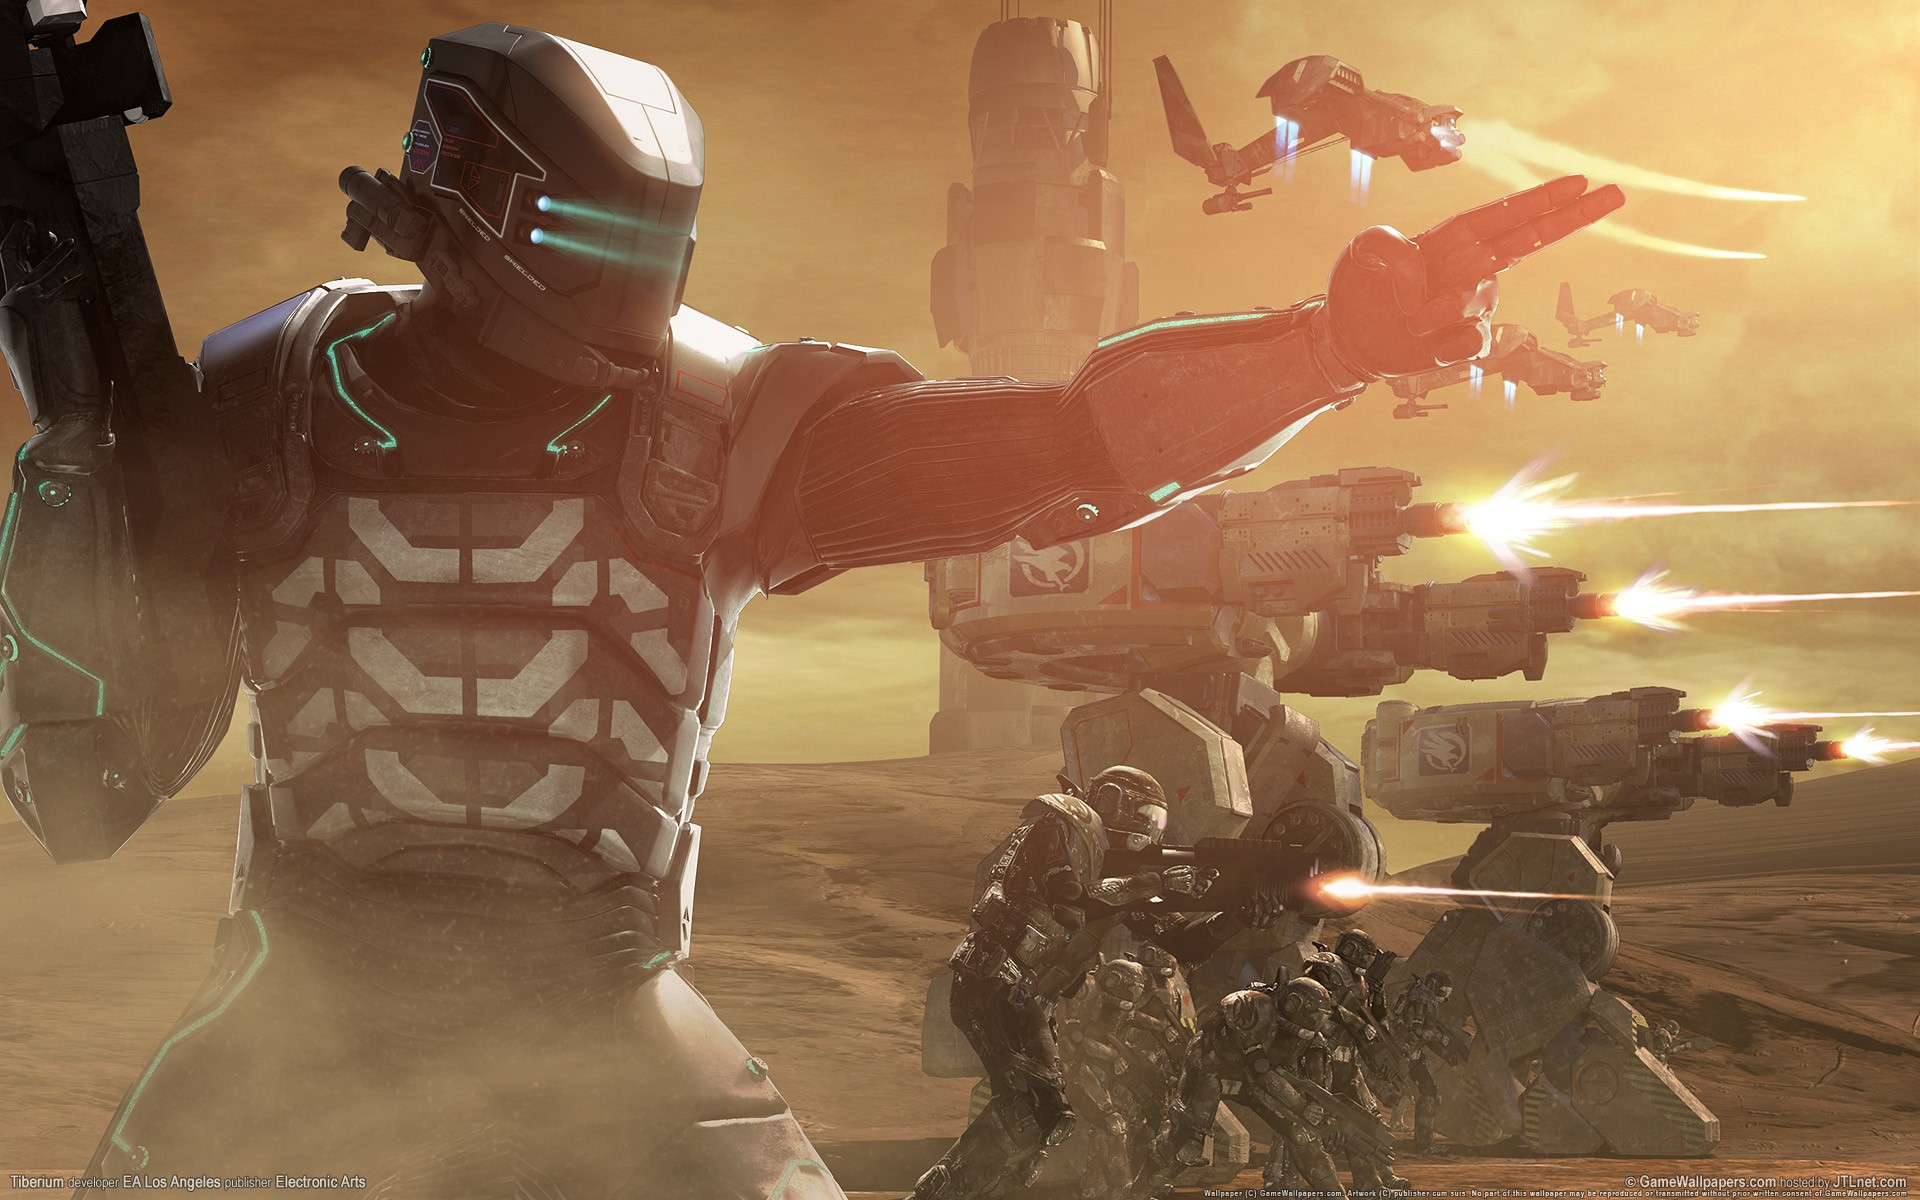 cool game video wallpapers pictures technobuzz 1920x1200